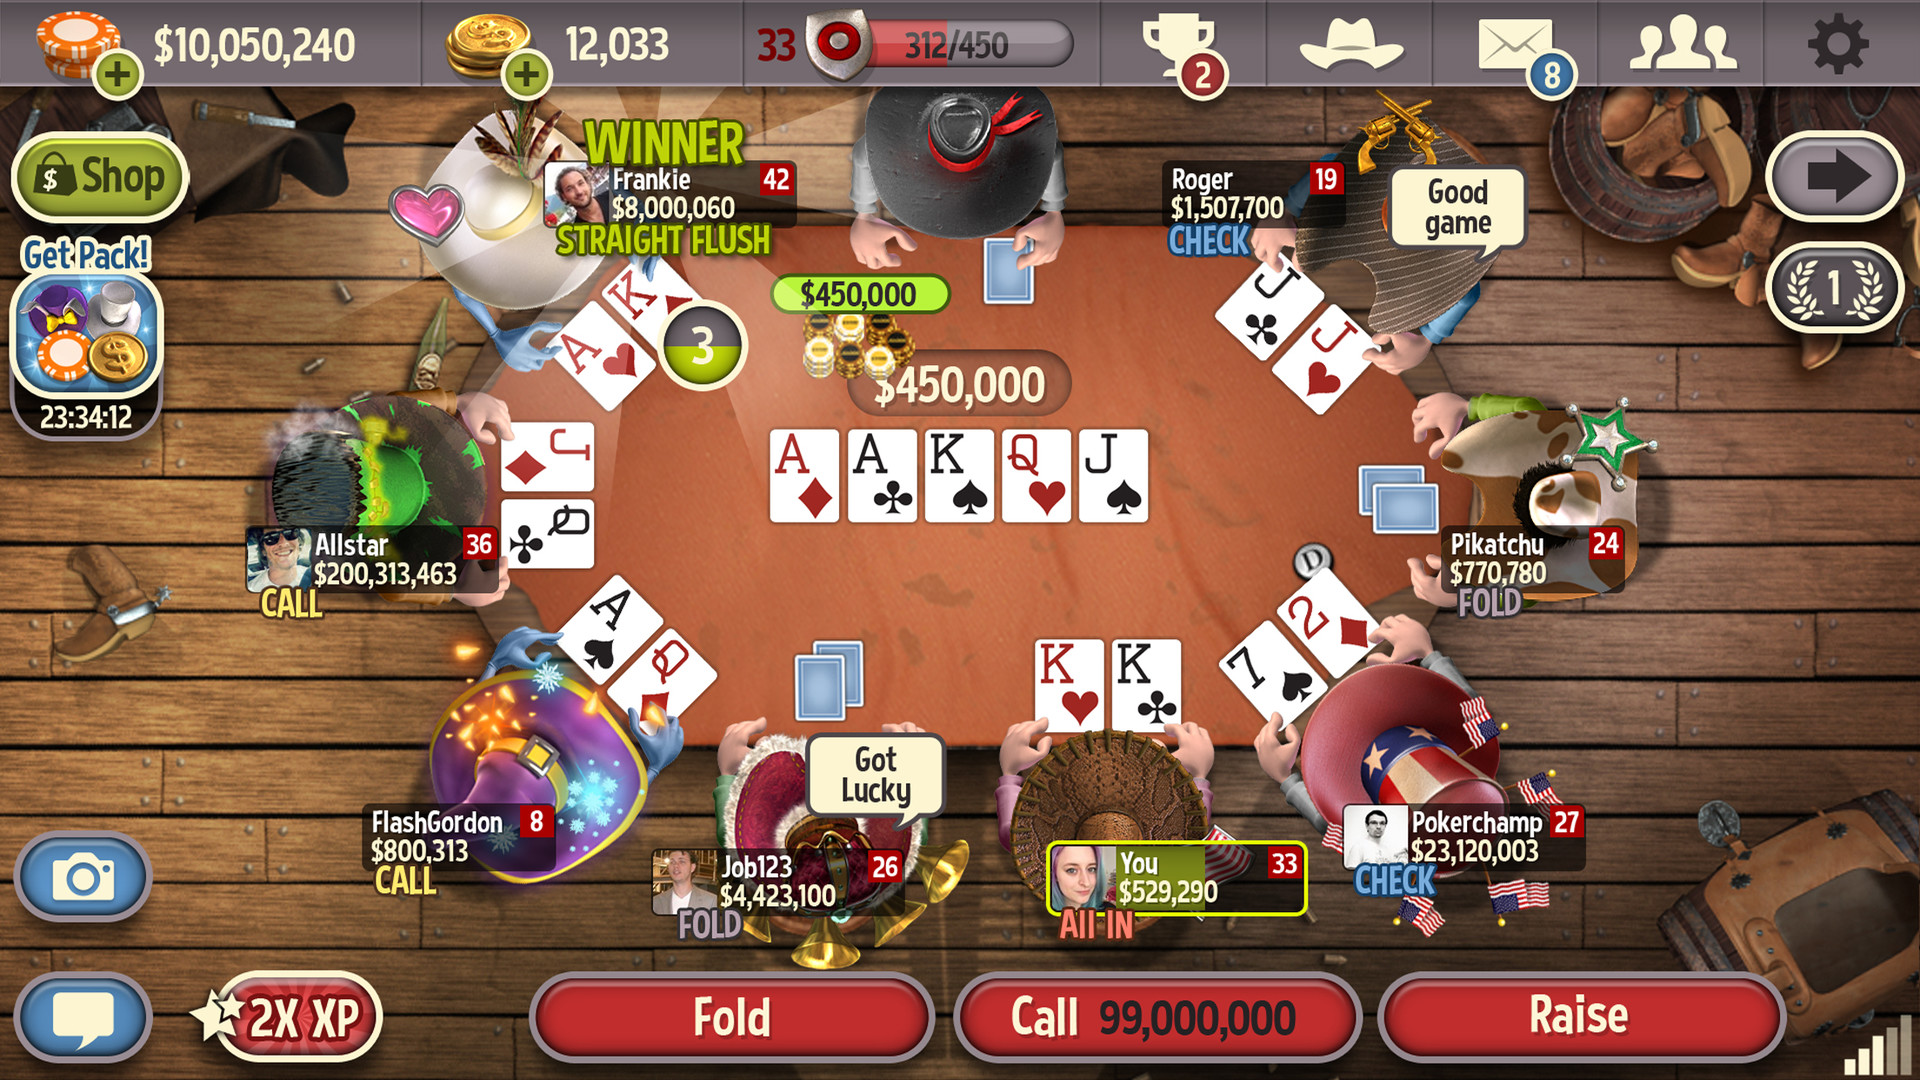 Best poker tracker hud configuration